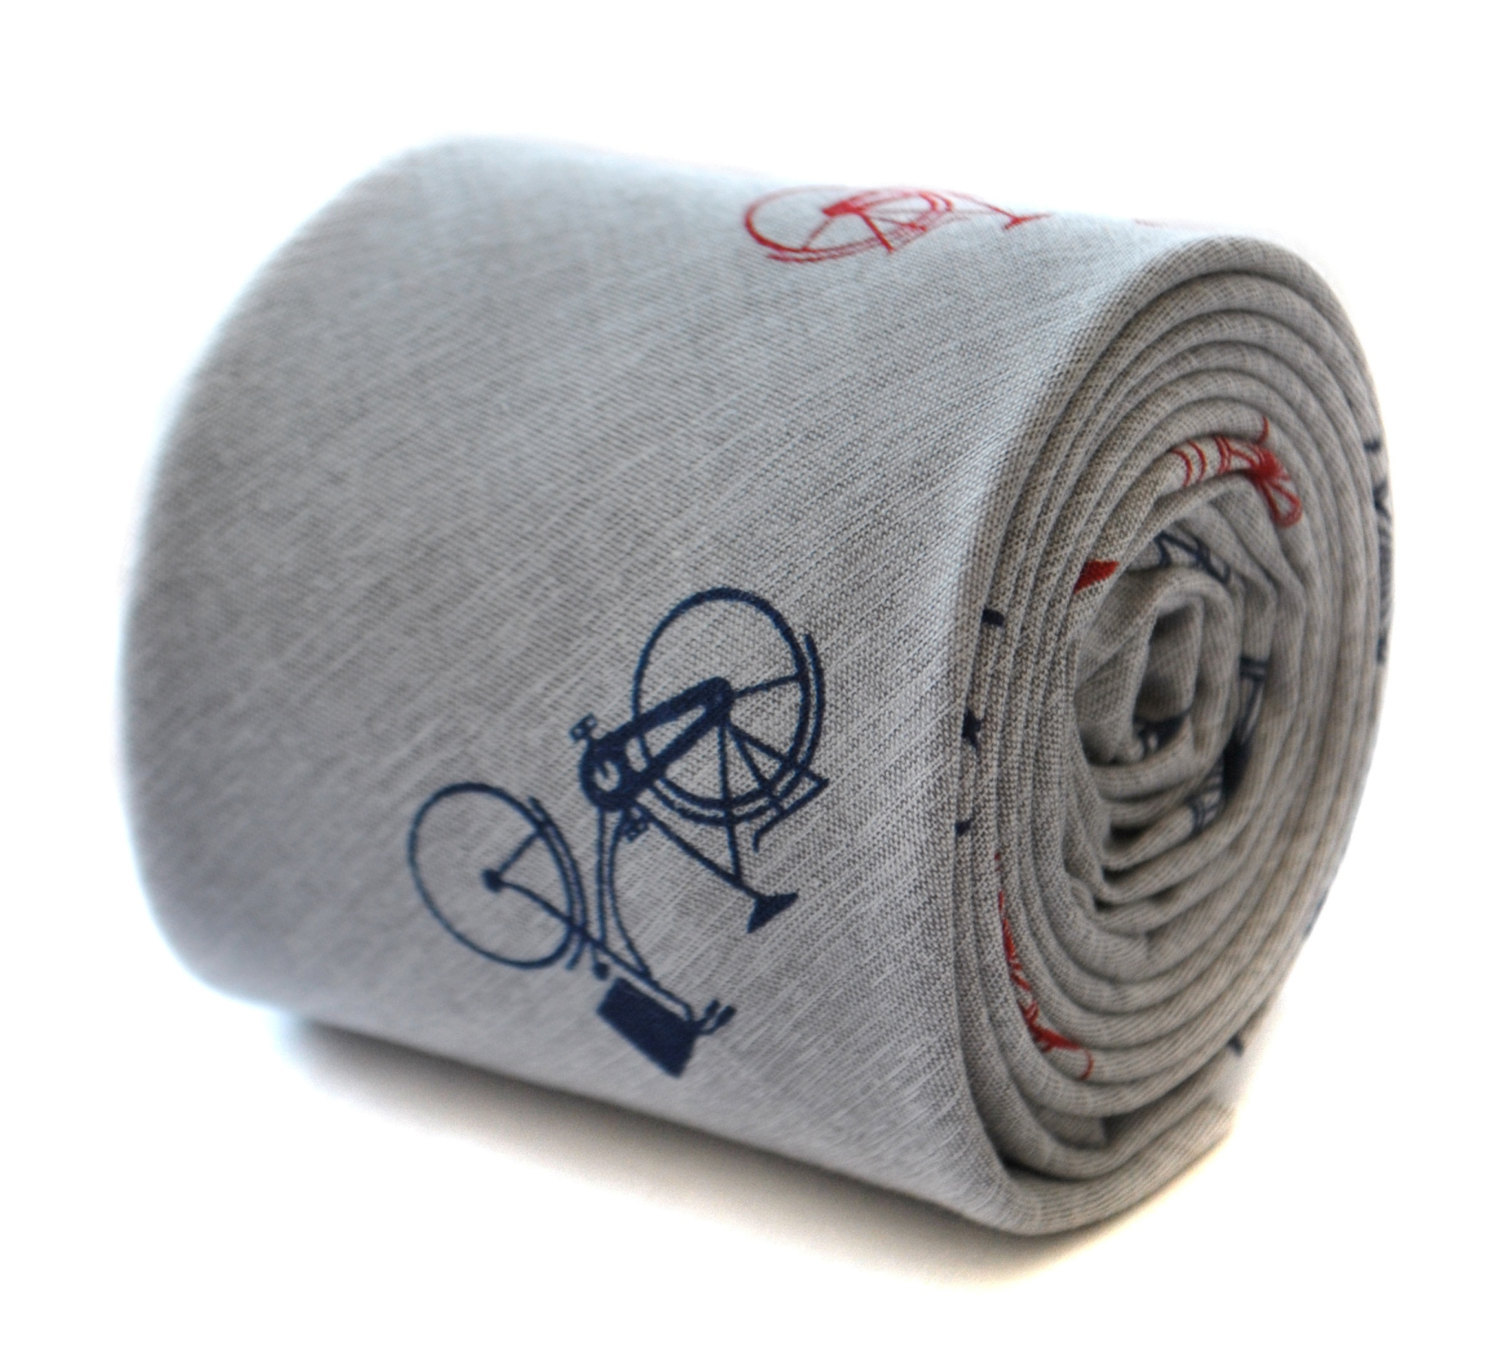 skinny pale grey linen tie with bicycle print design by Frederick Thomas FT1895